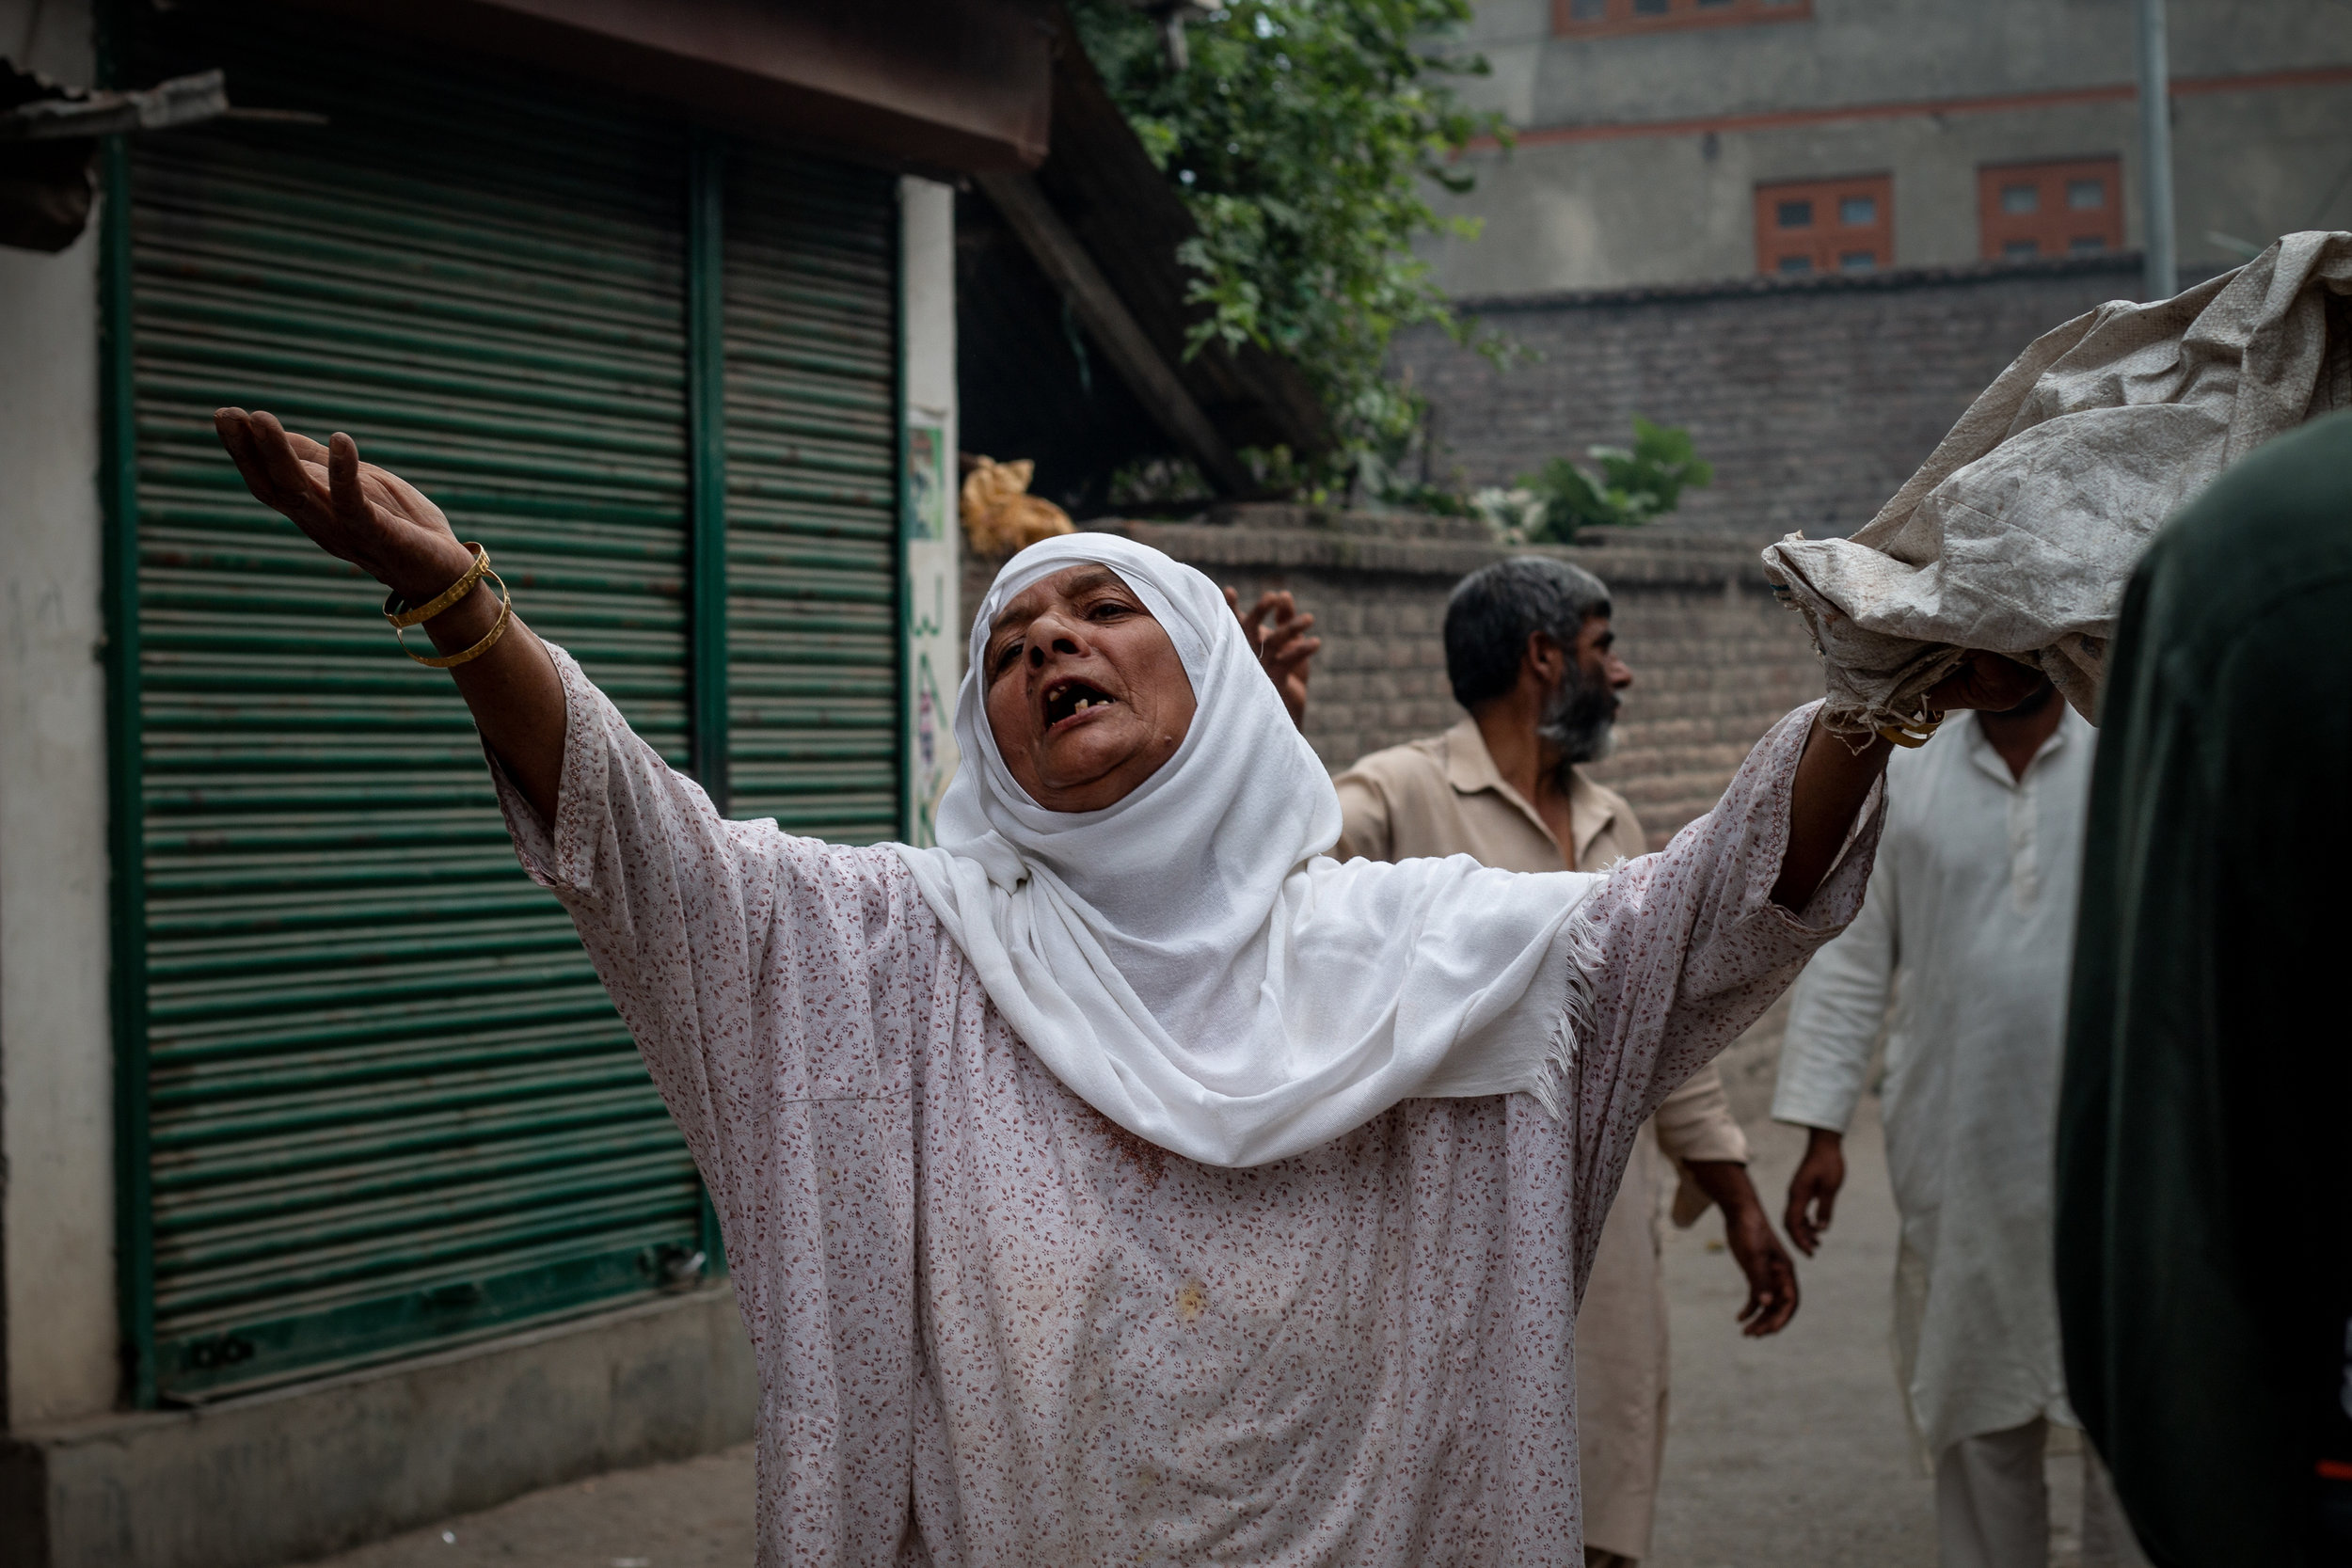 An old woman wailing after she saw young men of her injured by the forces. She was cursing the Indian state for persecuting Kashmiris. Photo by Avinash Giri.